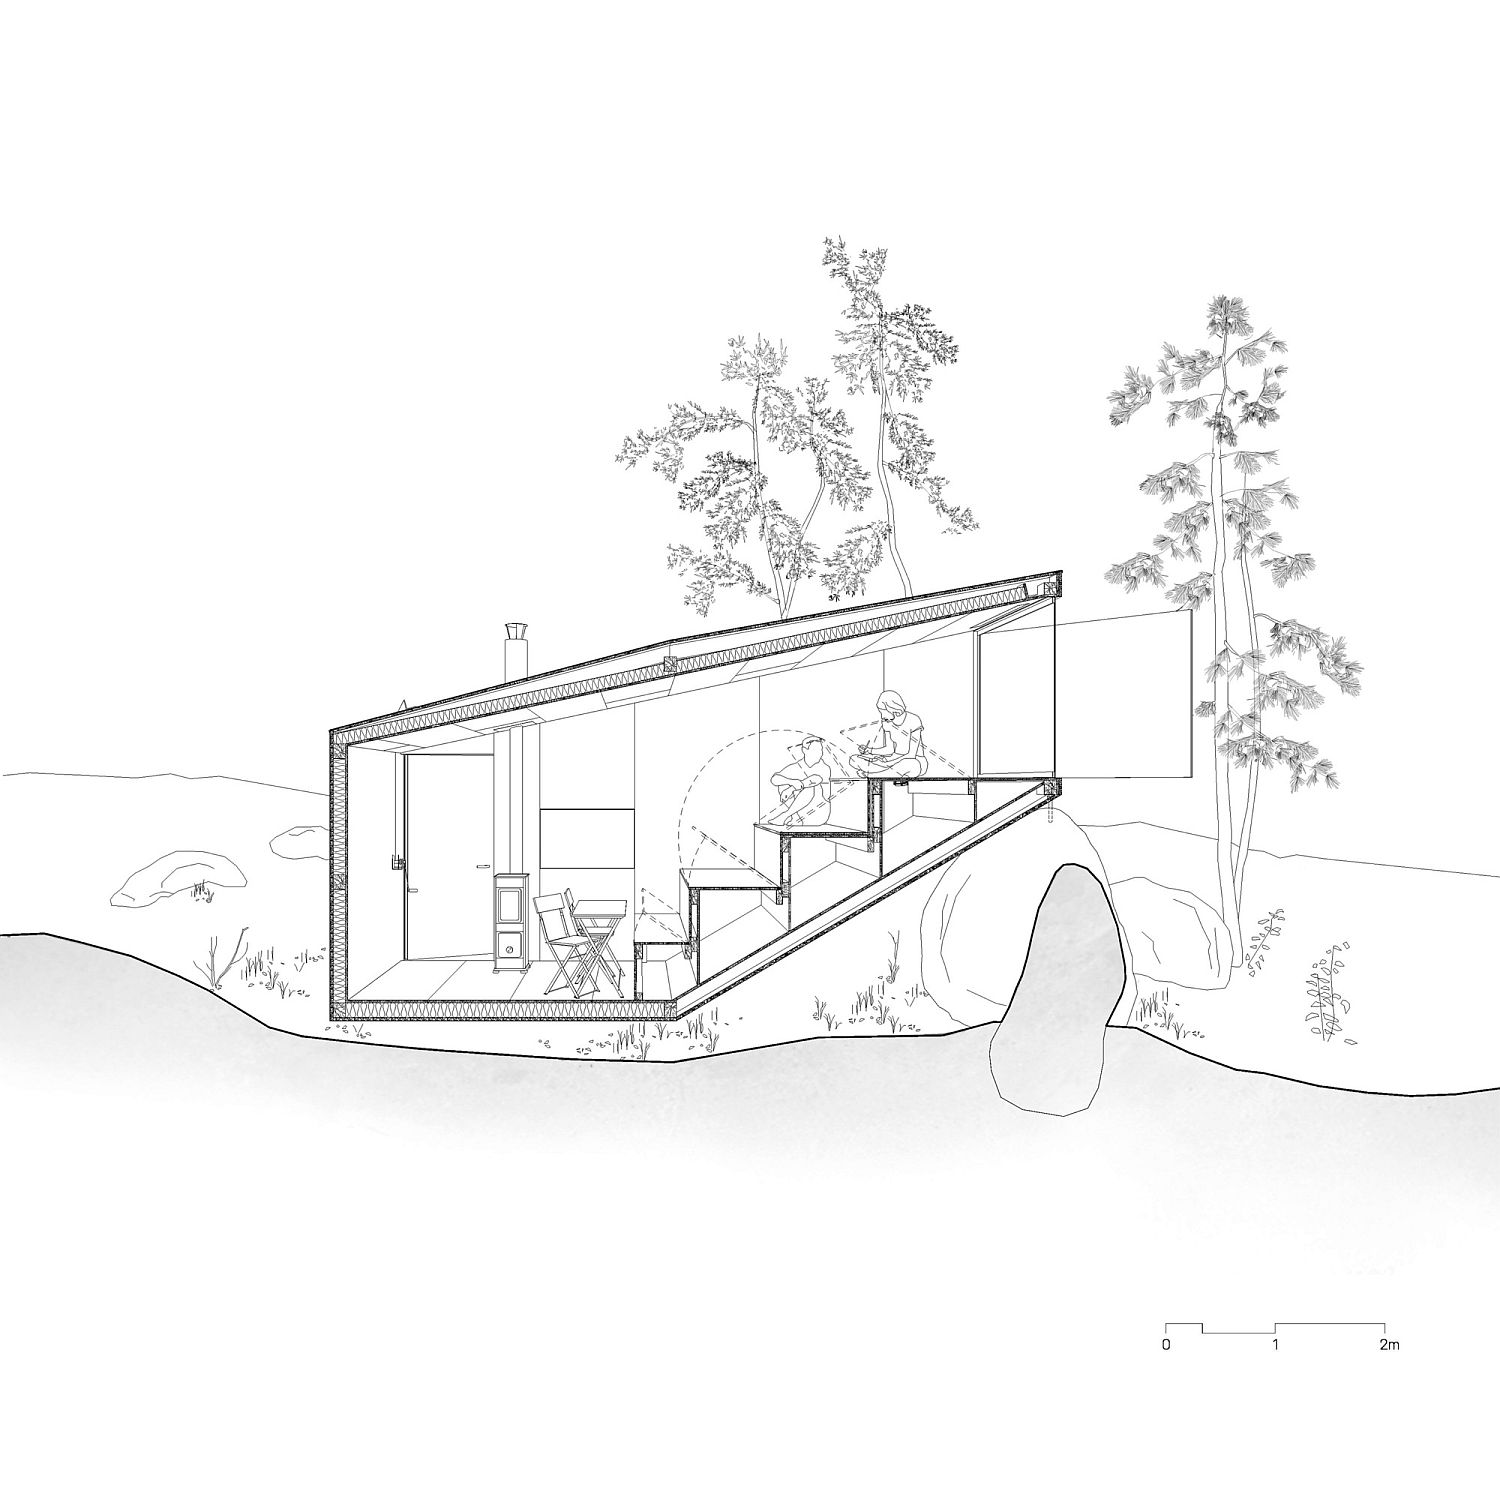 Sectional view of the Forest Retreat